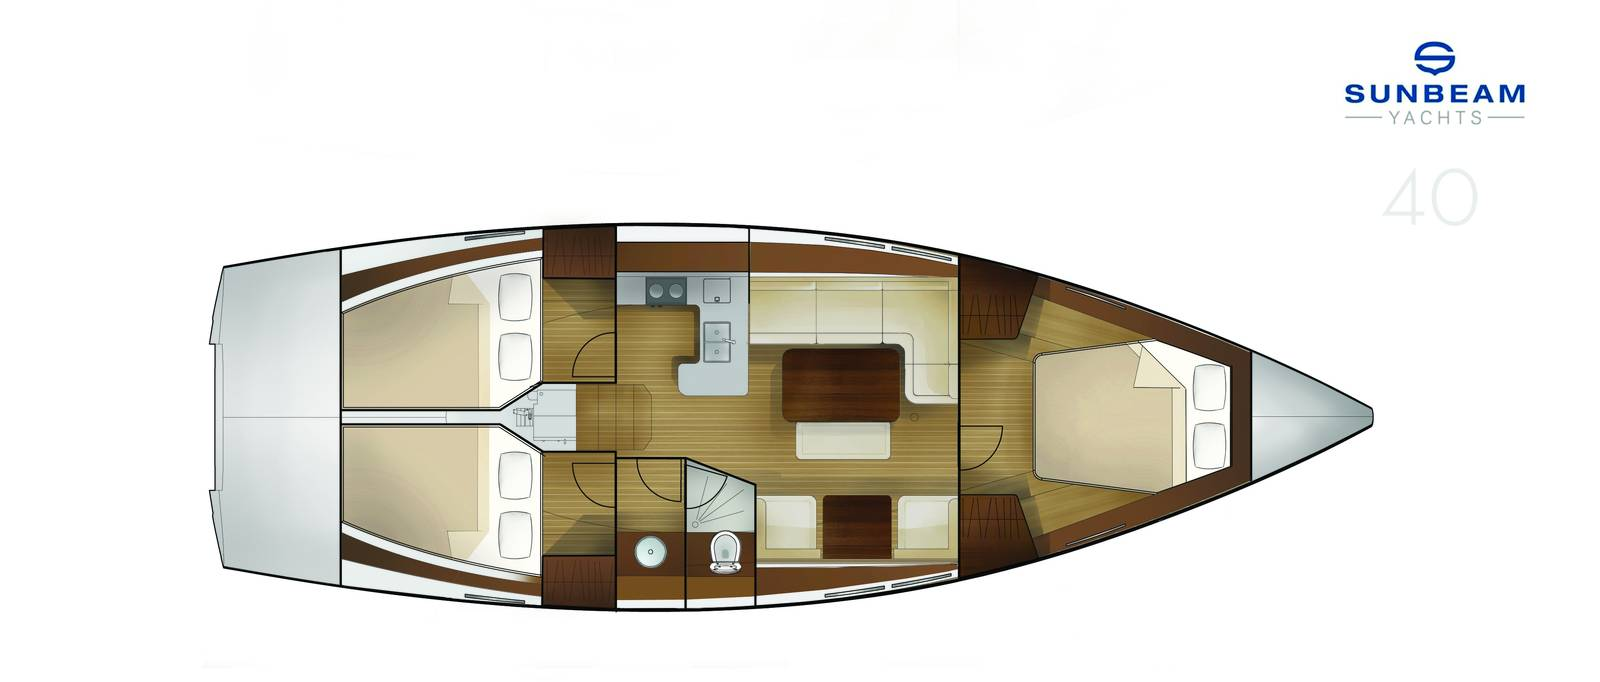 Sunbeam 40.1 - csm_Sunbeam_2D_interior_3_bed.jpg